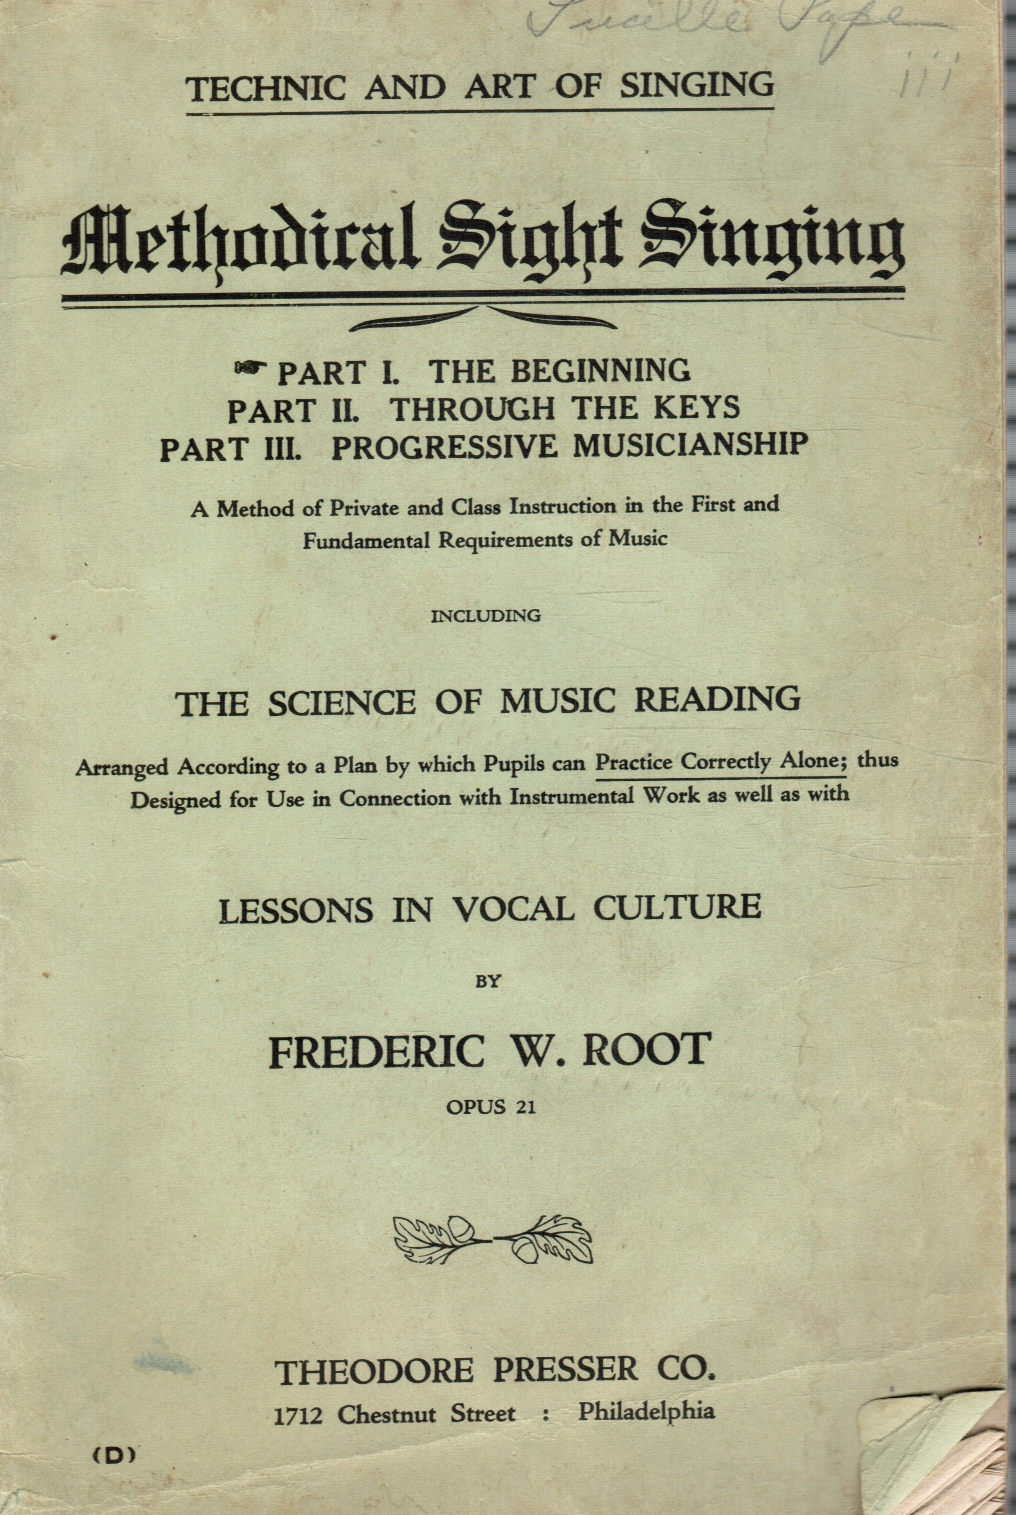 Image for Methodical Sight Singing: Technic And Art Of Singing